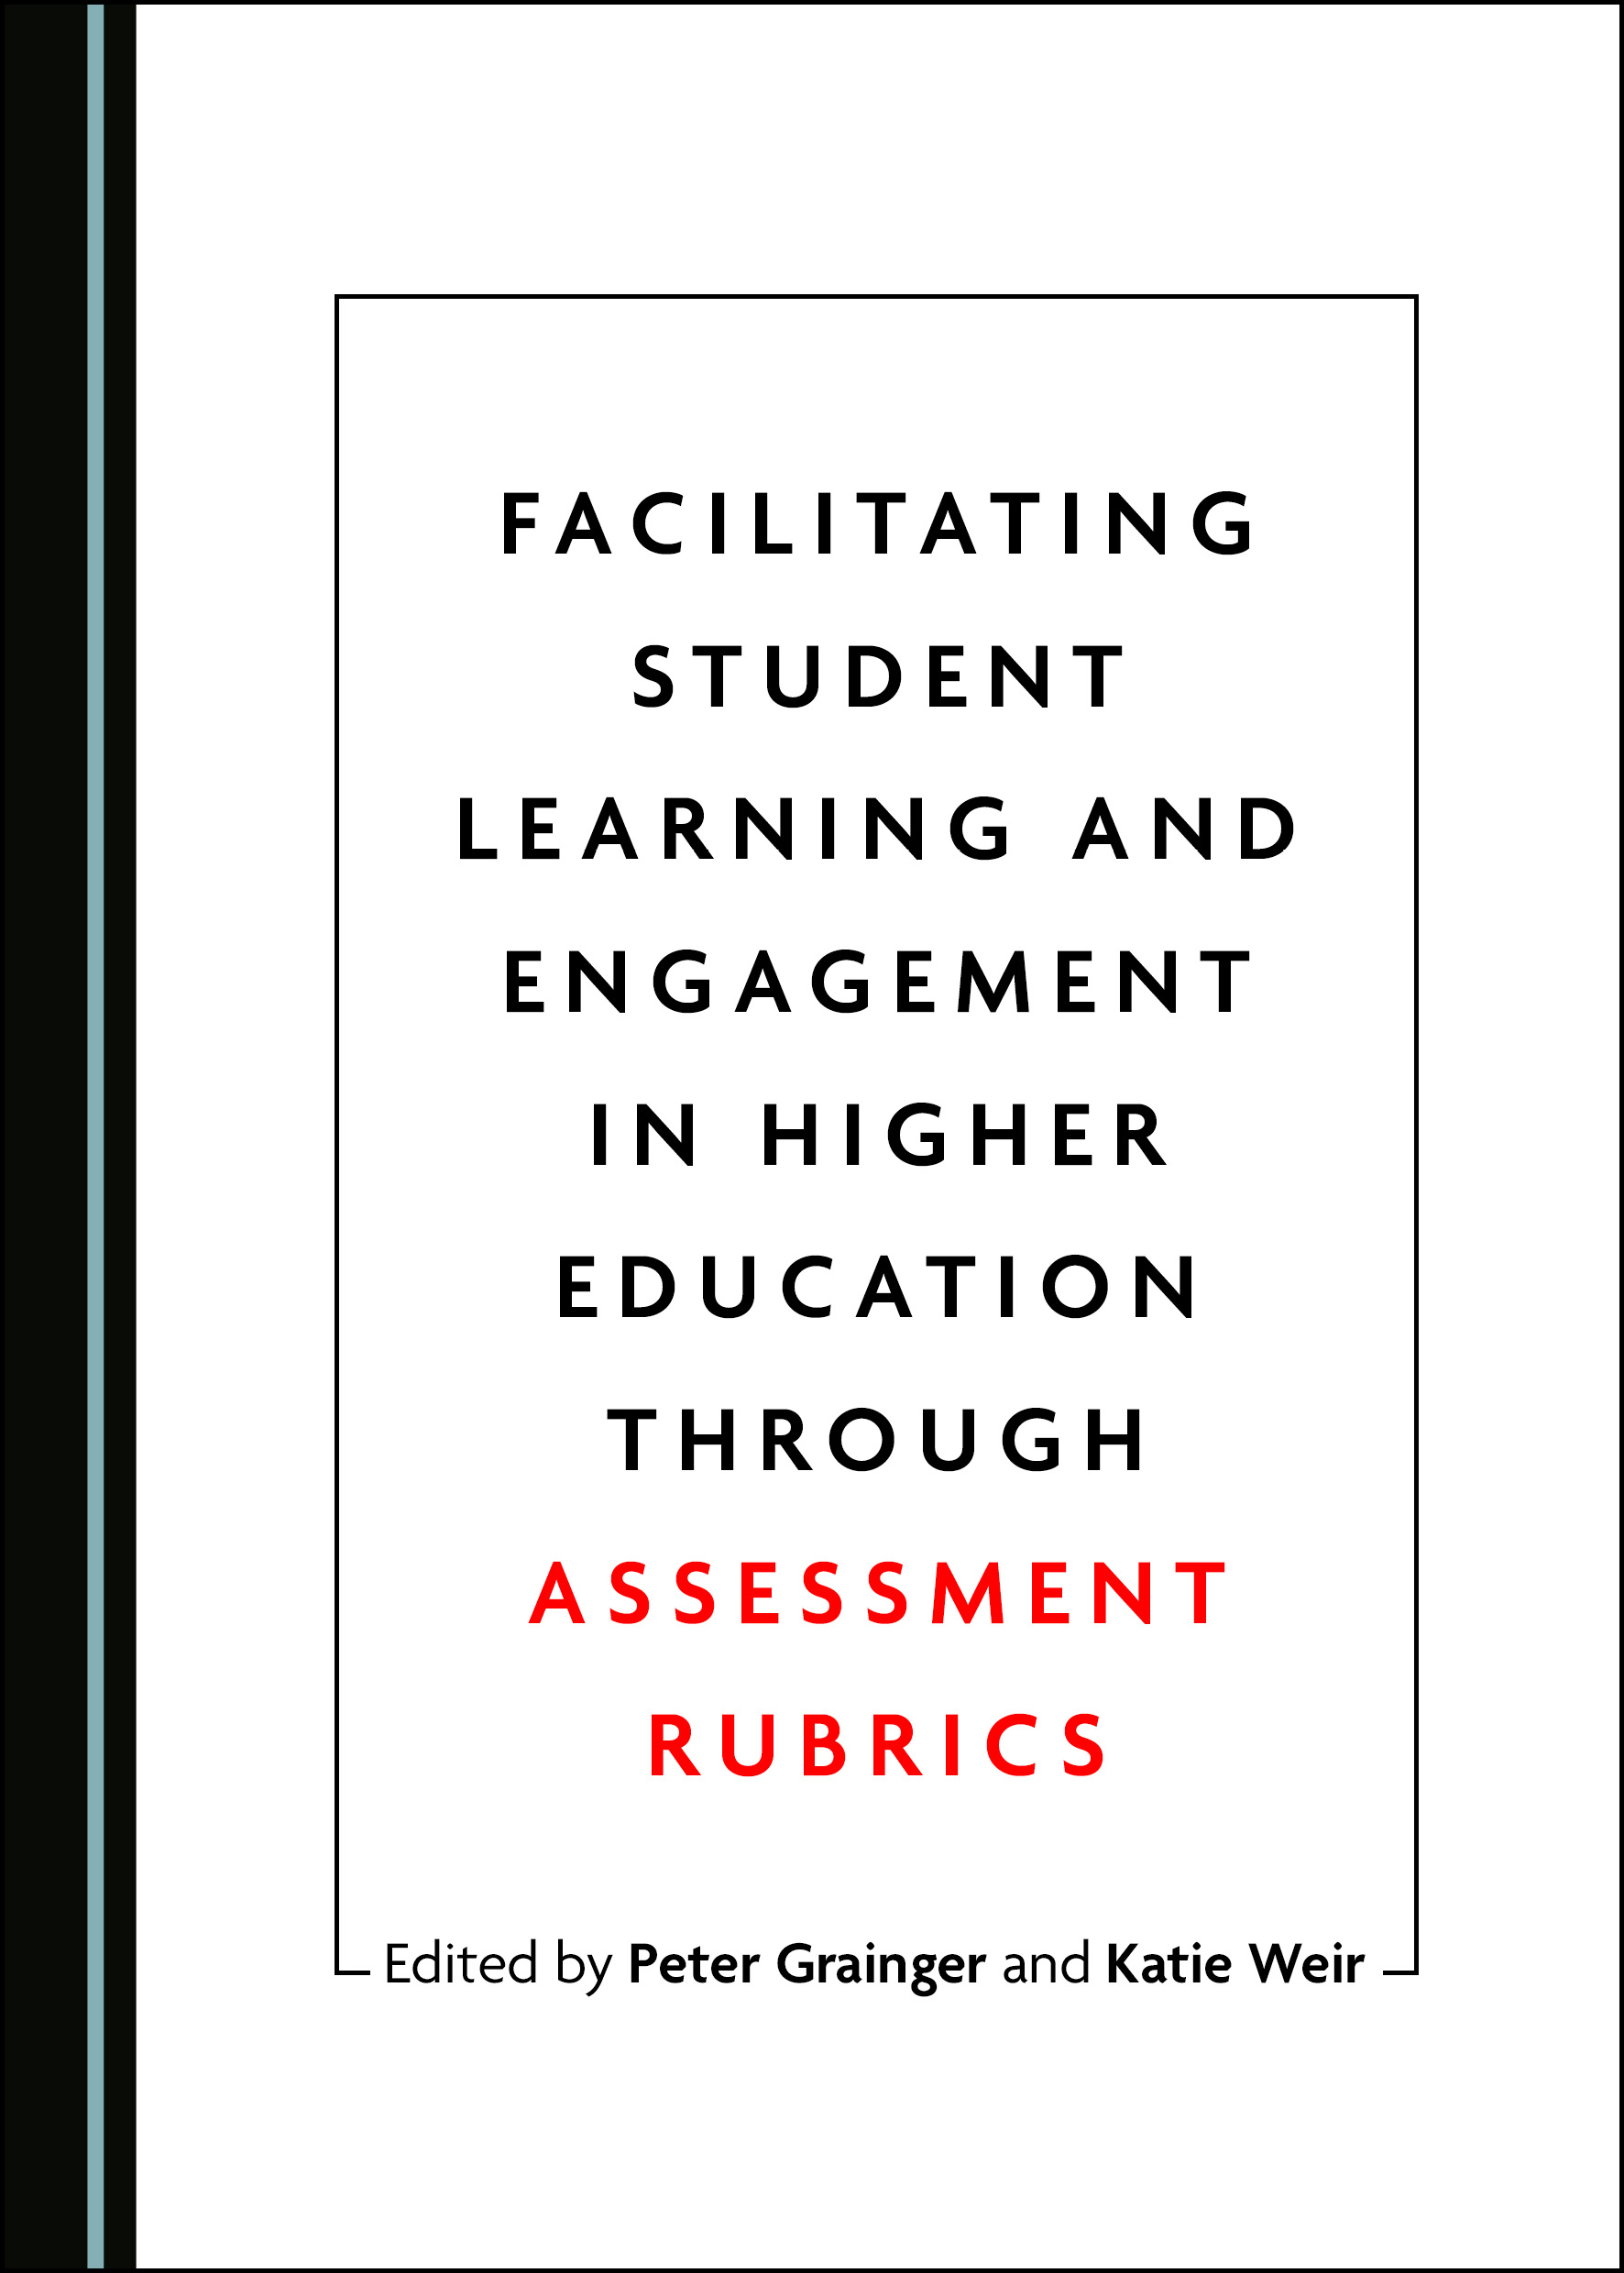 Facilitating Student Learning and Engagement in Higher Education through Assessment Rubrics